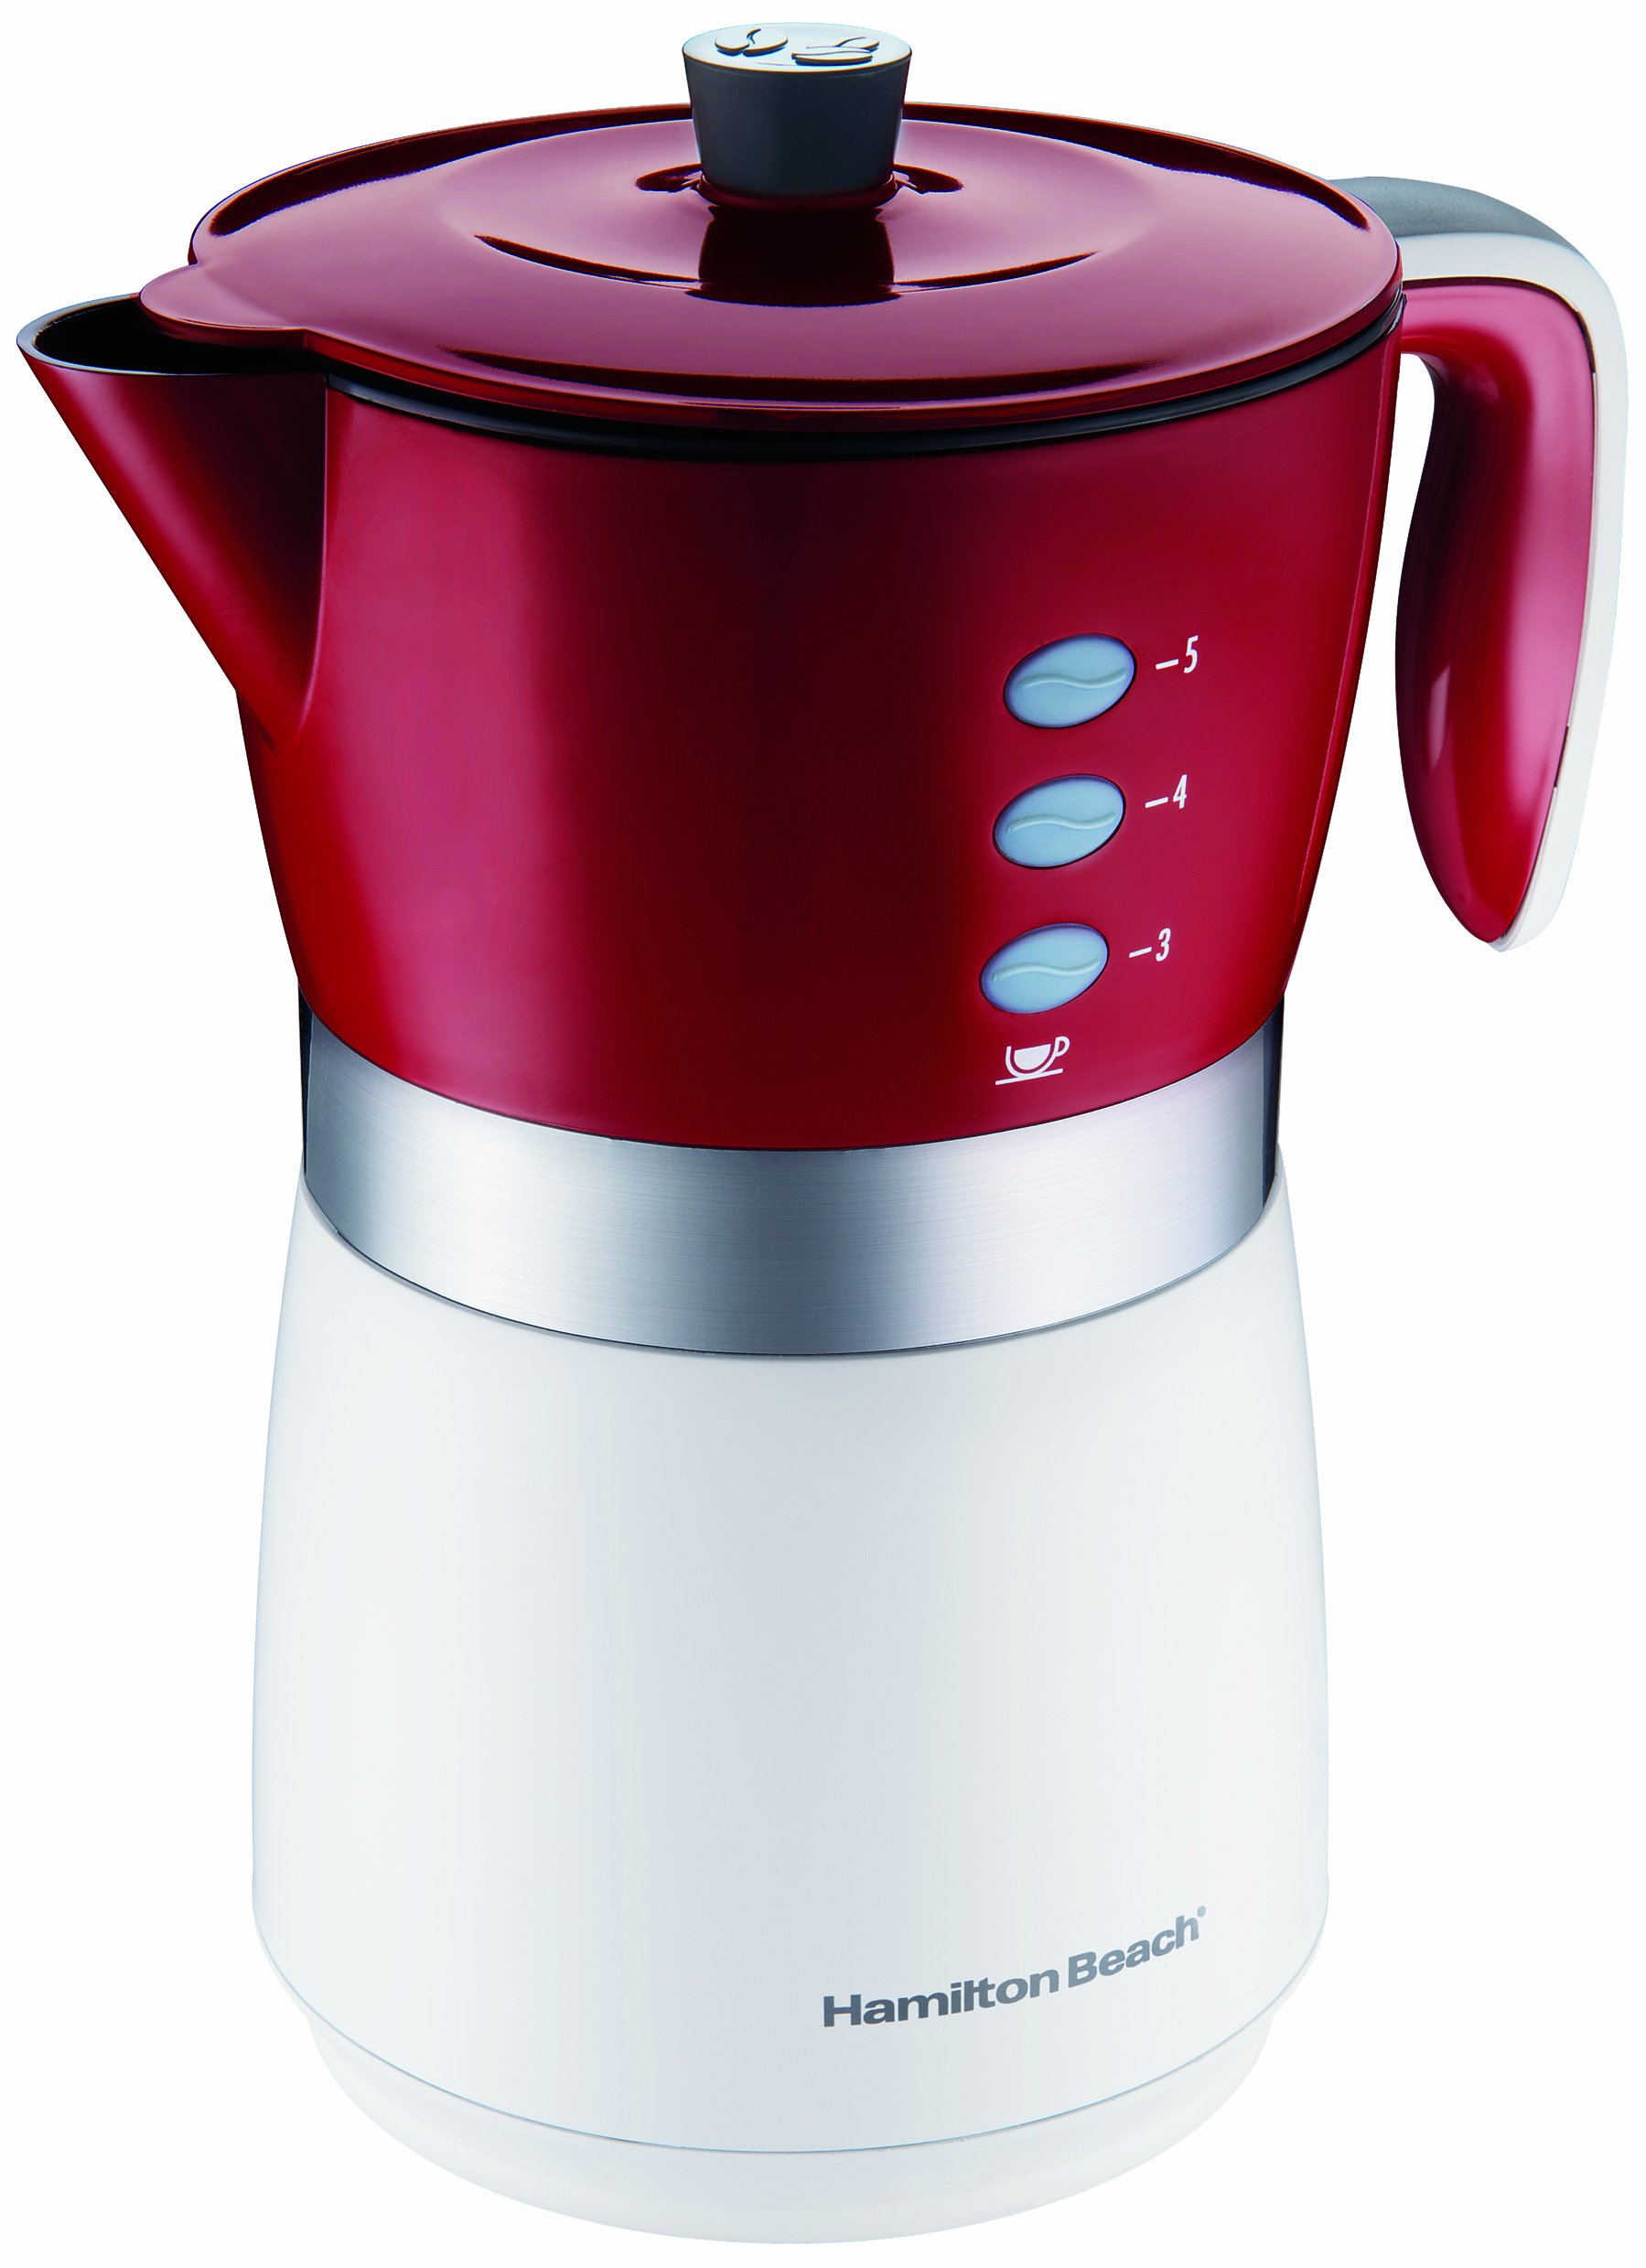 Hamilton Beach 43700 5-Cup Personal Coffee Brewer, Red by Hamilton Beach